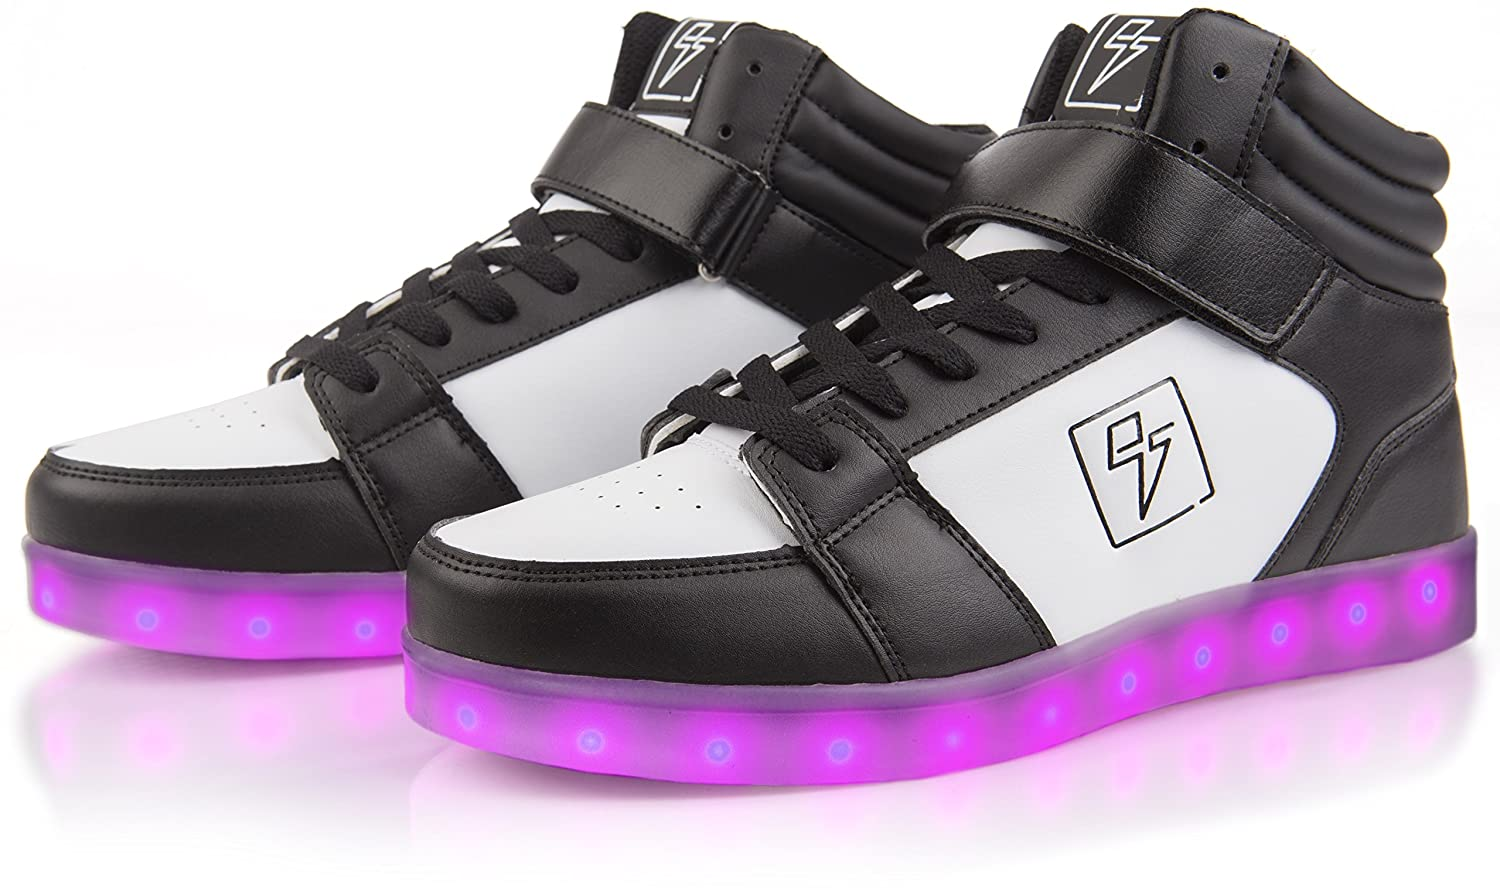 Electric Styles Light up Shoes - High Tops by B01COEL50S 8 Men (10 Women)|Black & White